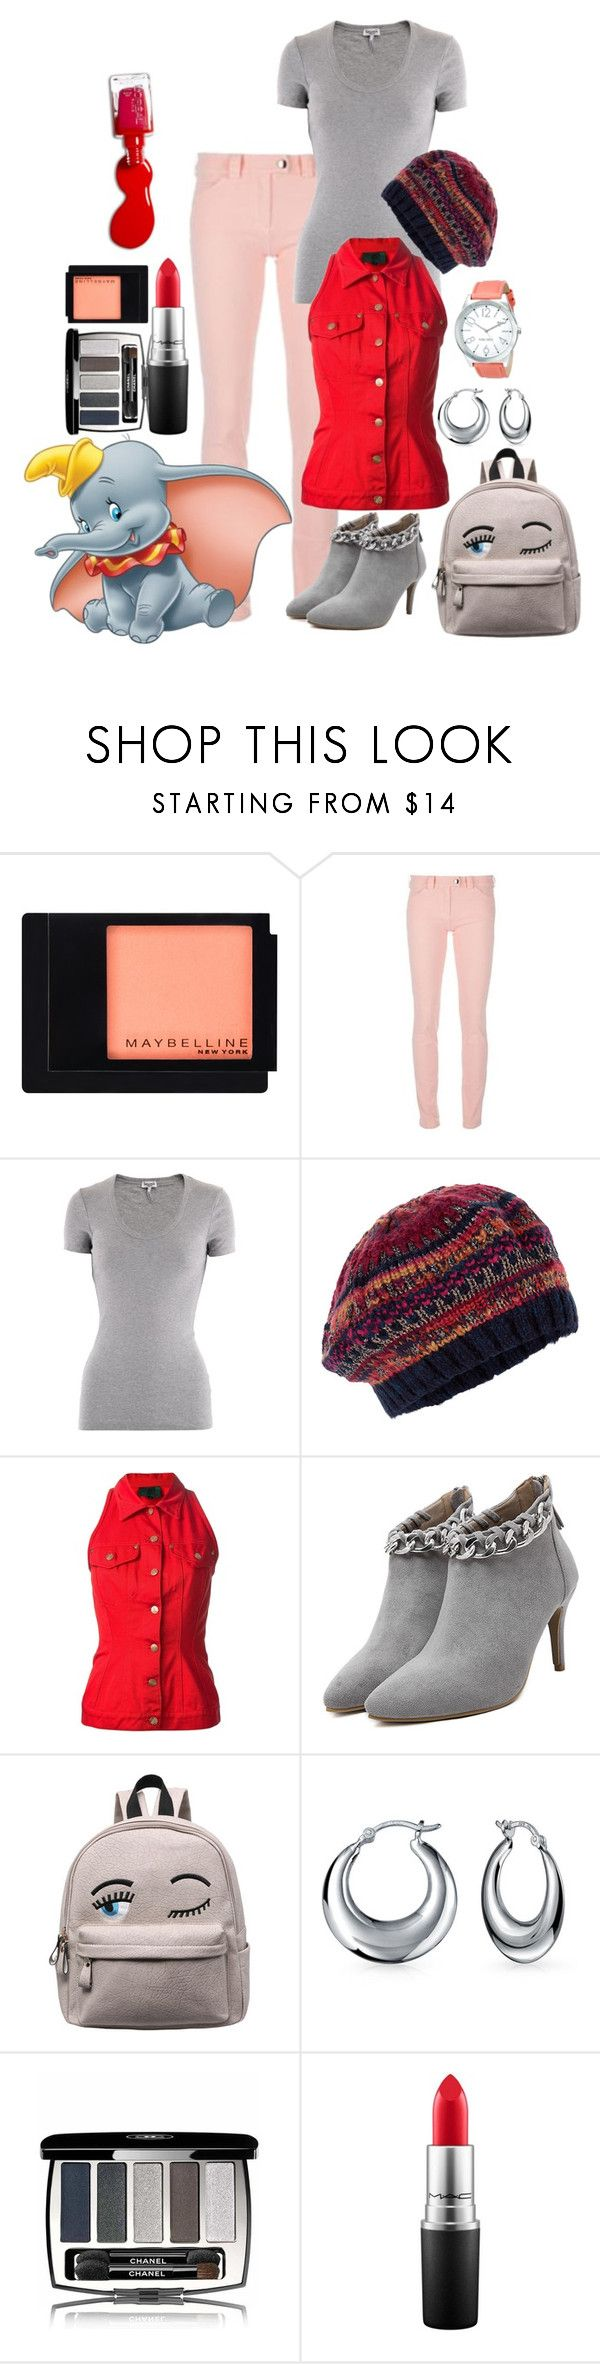 """""""Dumbo set"""" by dprice15 ❤ liked on Polyvore featuring Maybelline, Balenciaga, Splendid, Accessorize, Jean-Paul Gaultier, Bling Jewelry, Chanel, MAC Cosmetics, L'Oréal Paris and Nine West"""